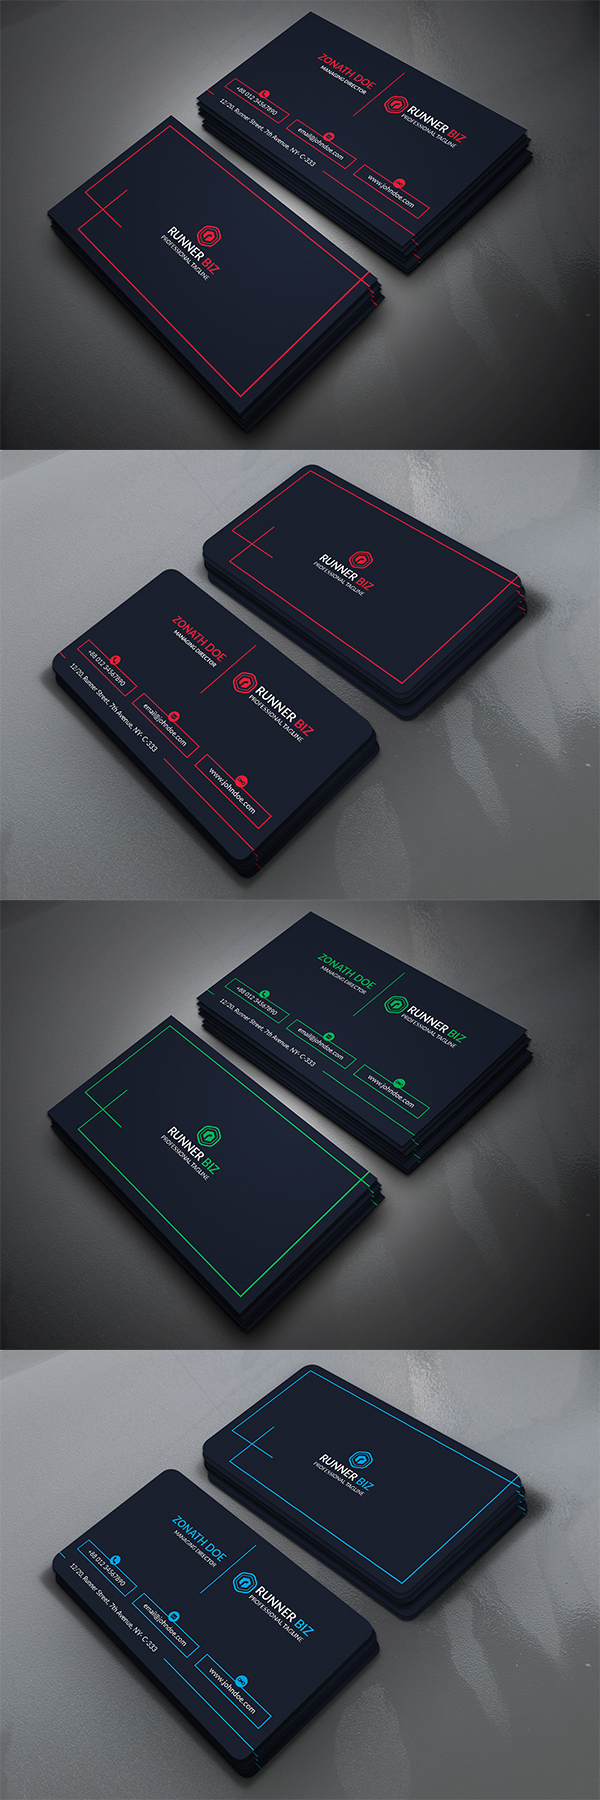 17 Business Card Design